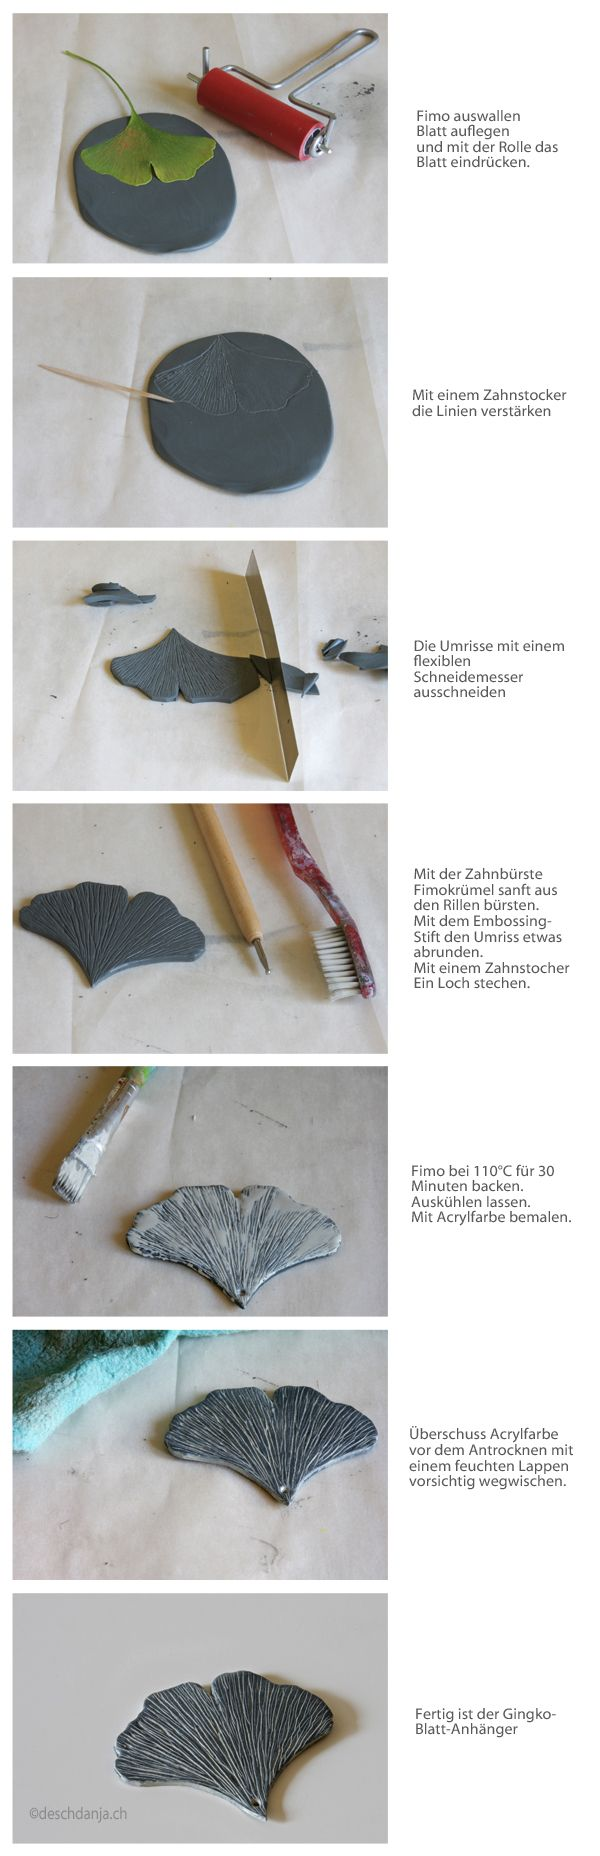 How to make a leaf pendant from polymer clay. Instructions can be translated to English, but not the infographic.